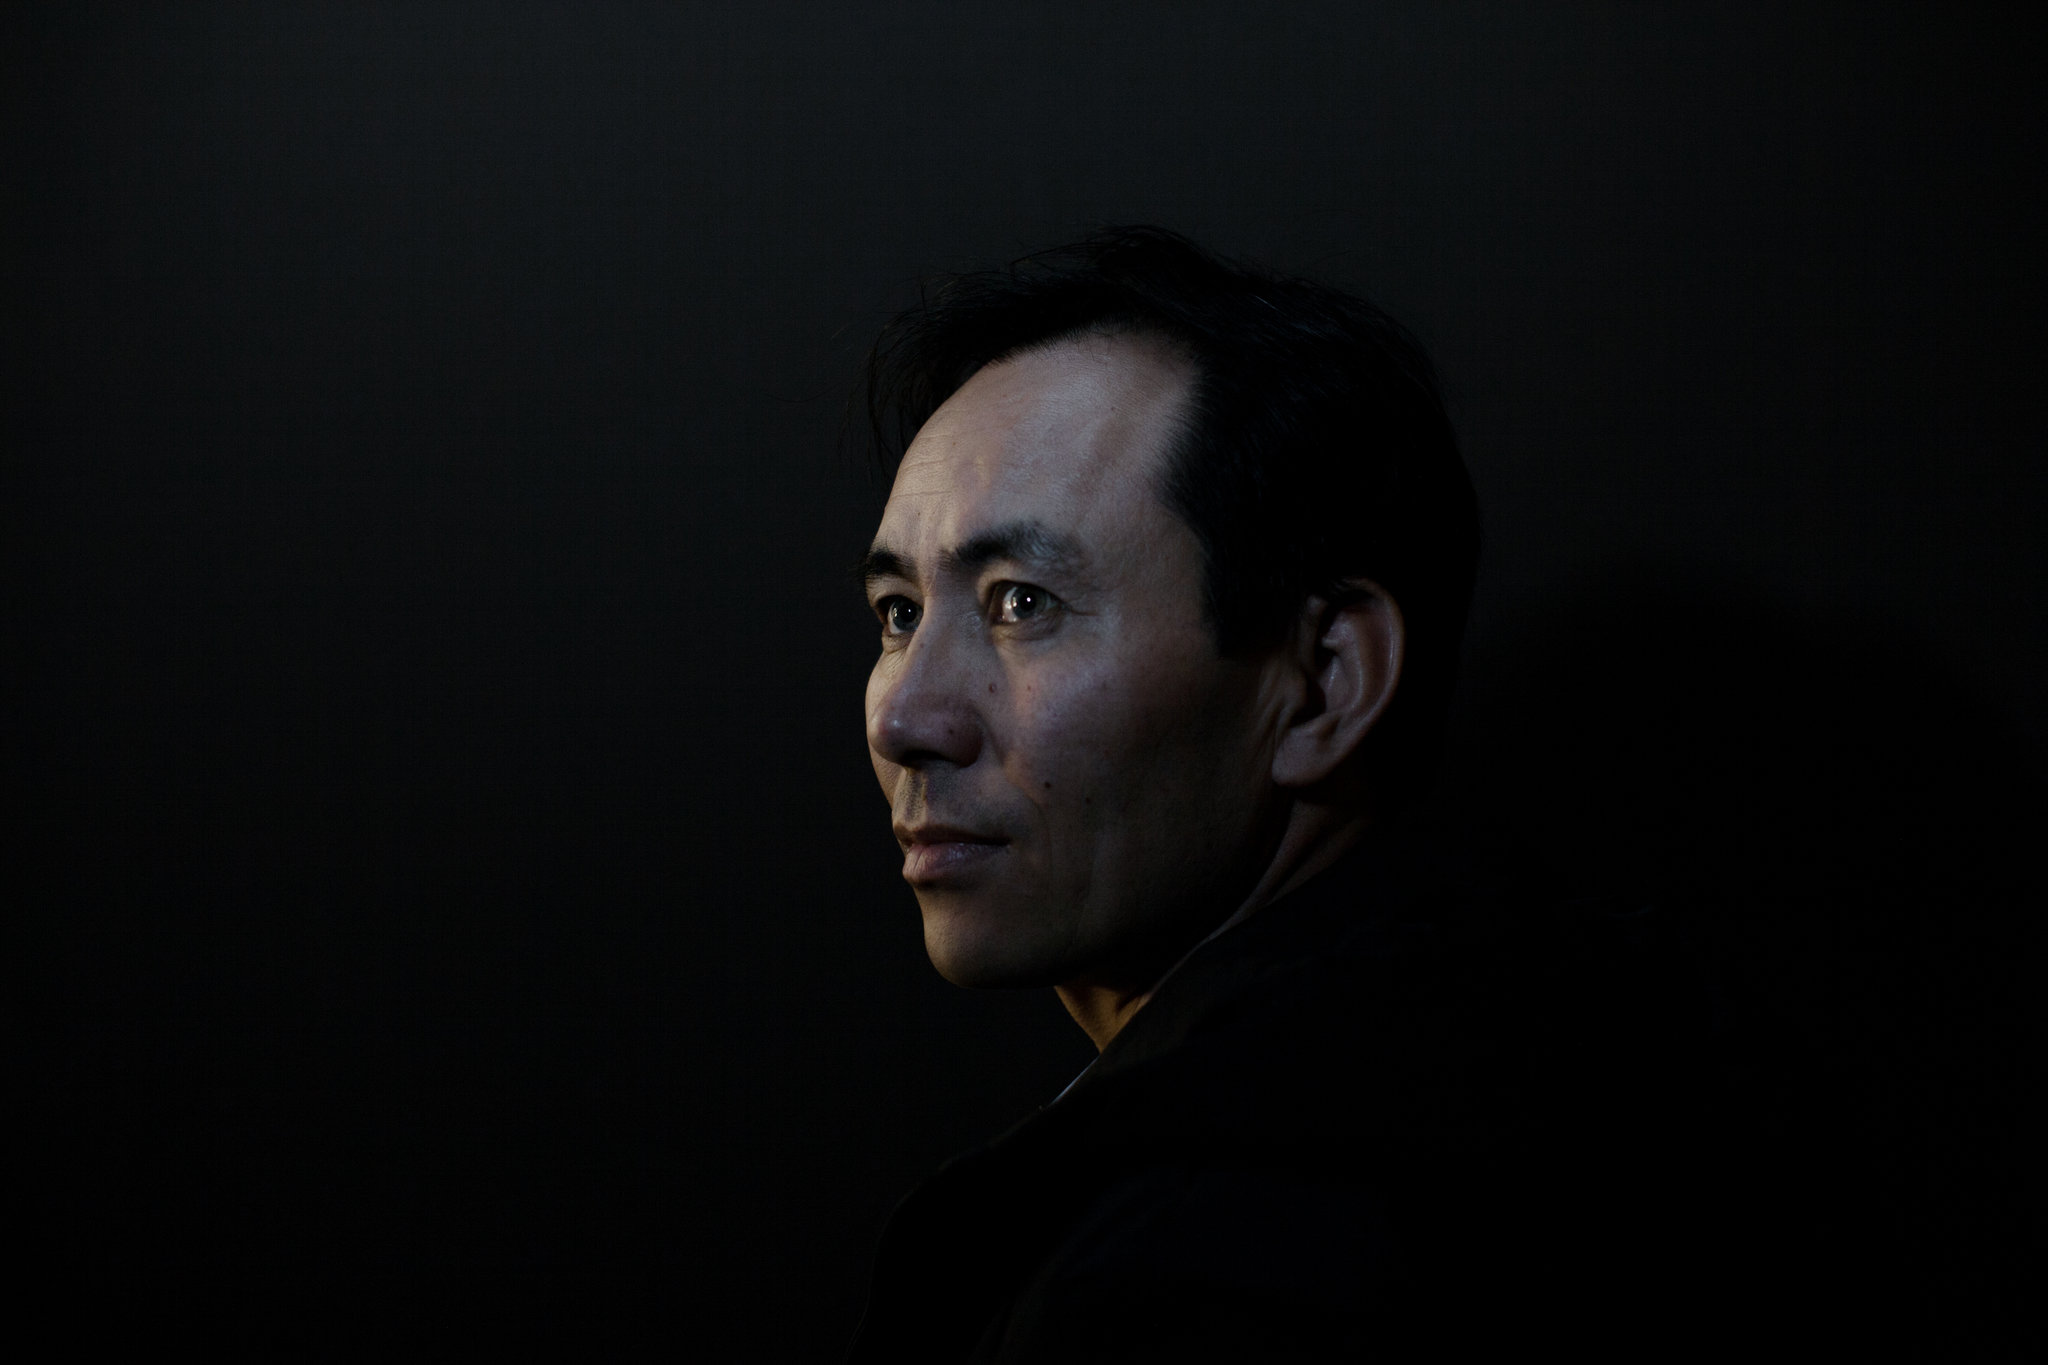 He Needed a Job. China Gave Him One: Locking Up His Fellow Muslims.